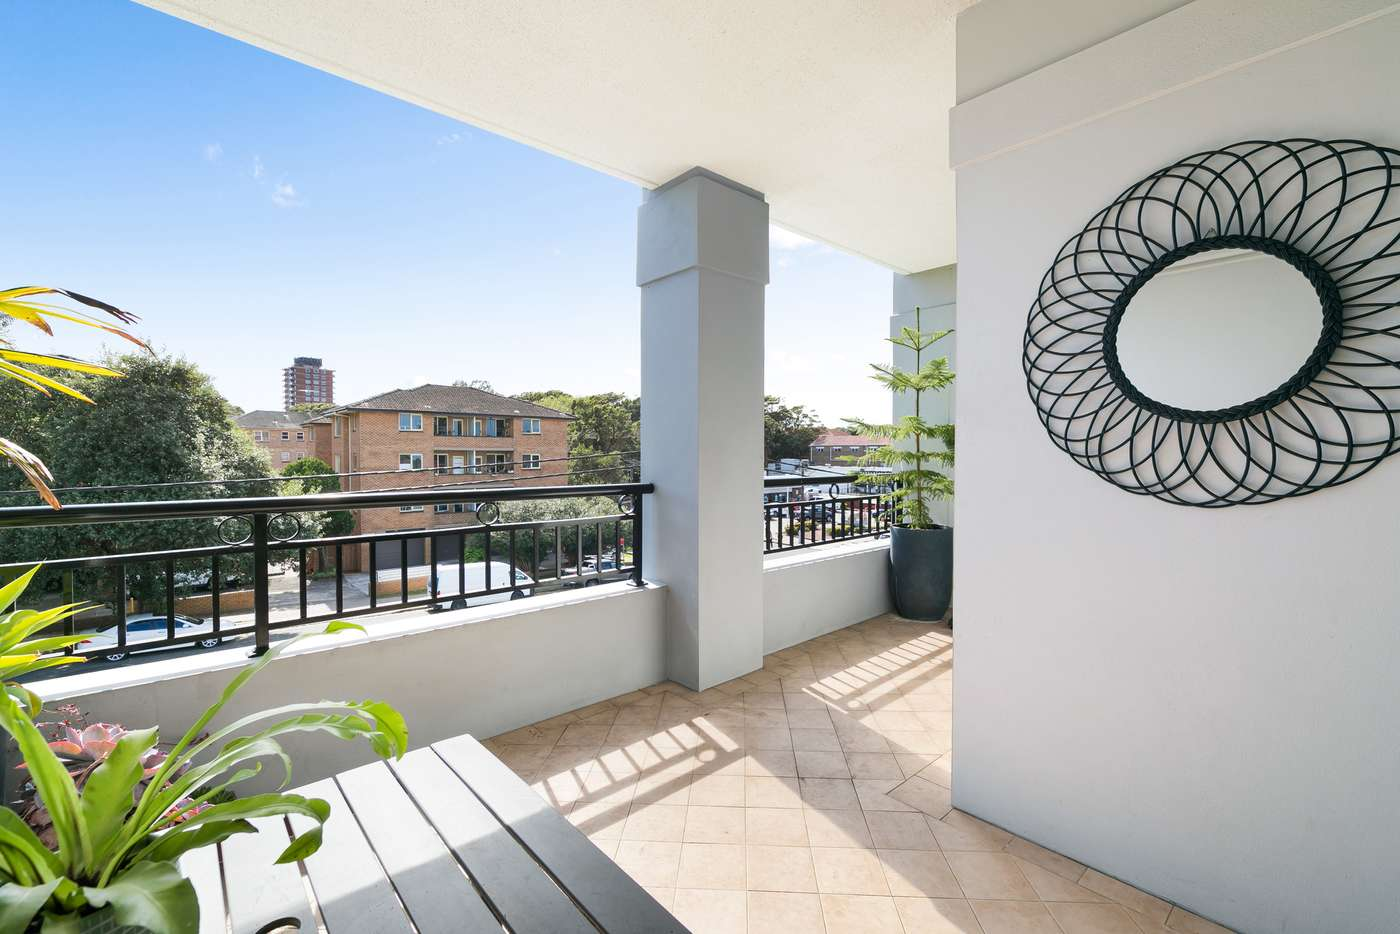 Main view of Homely apartment listing, 16/52-54 Kingsway, Cronulla NSW 2230